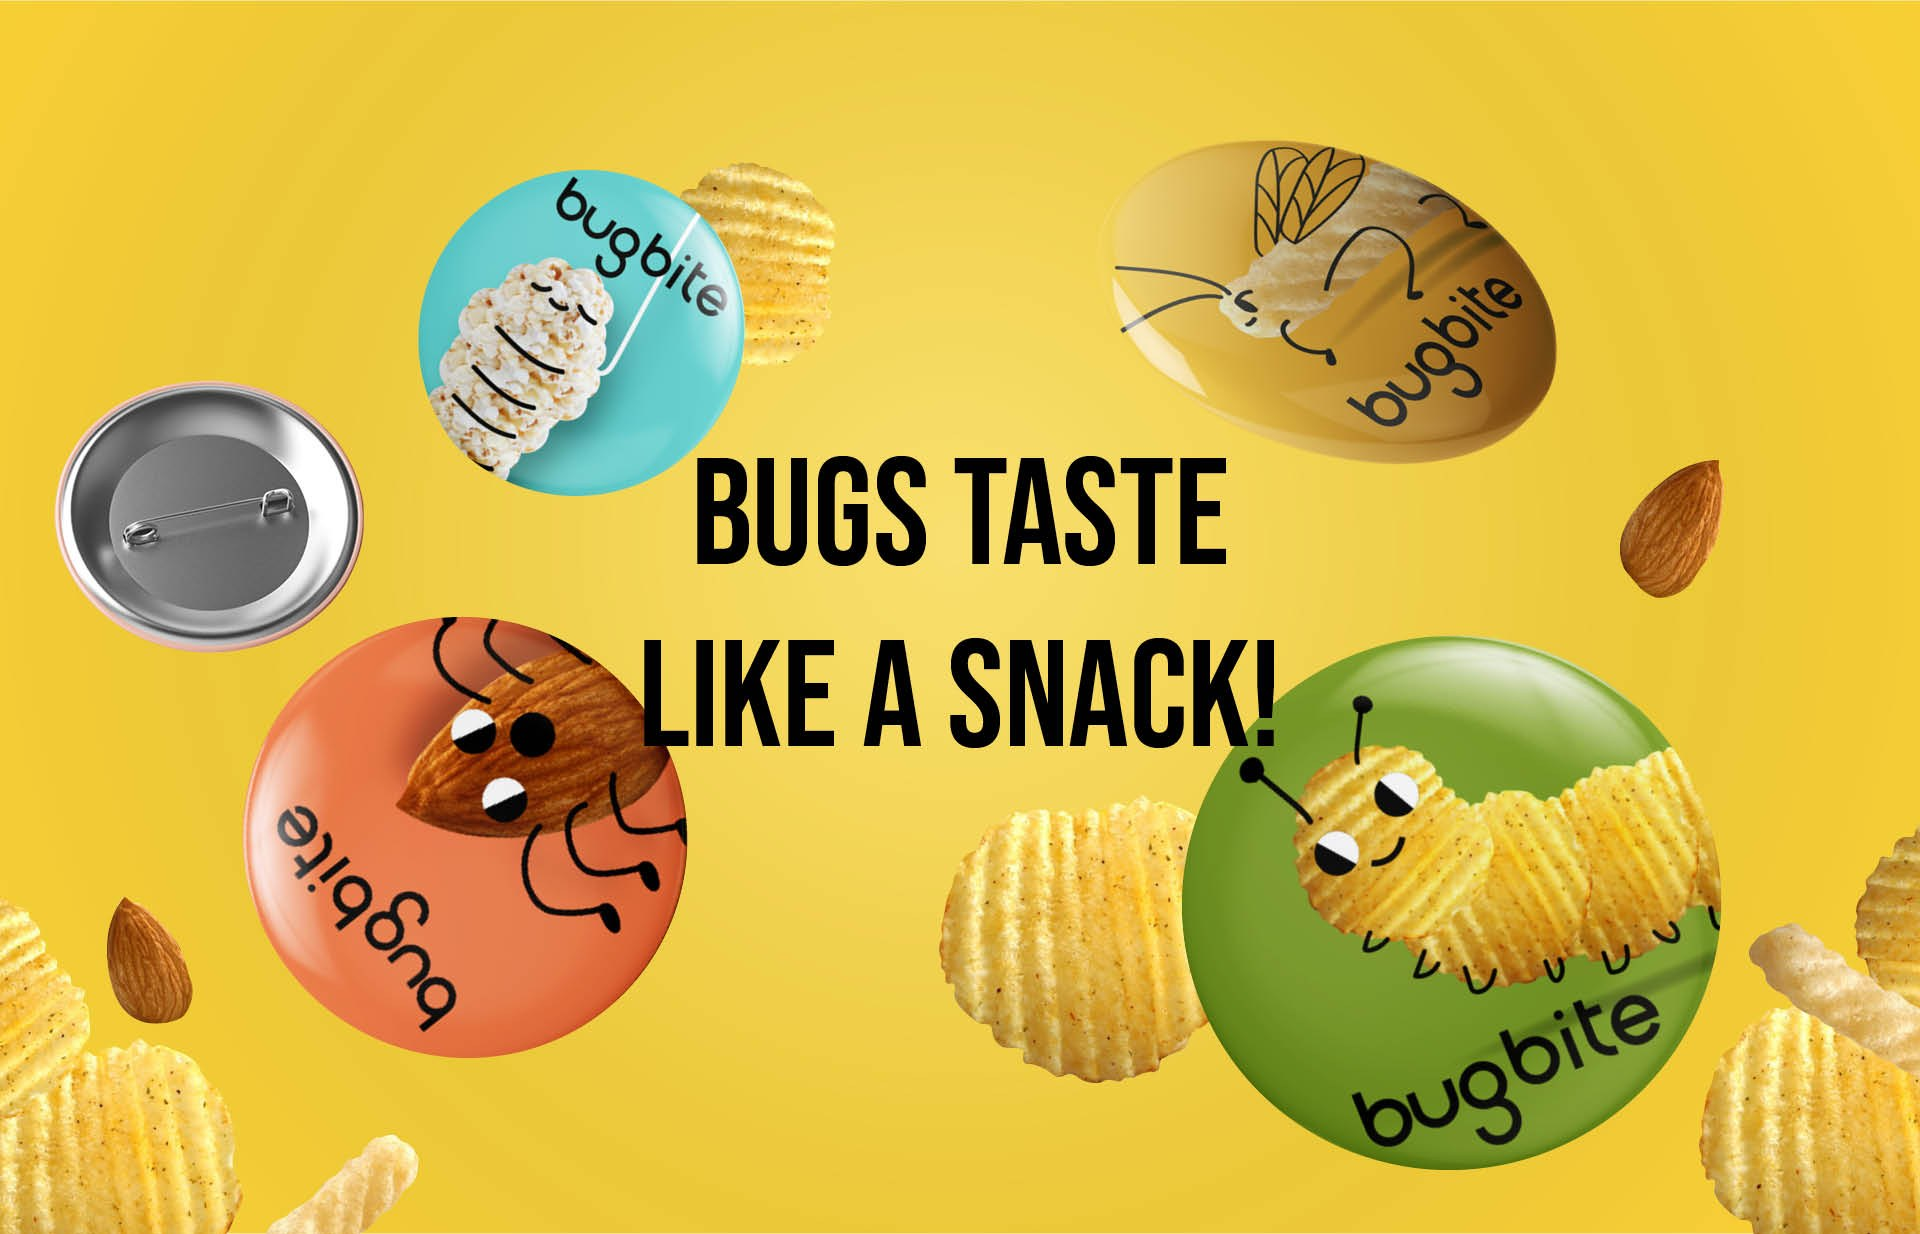 Bugbite - Exploring to overcome our preconception of eating bugs